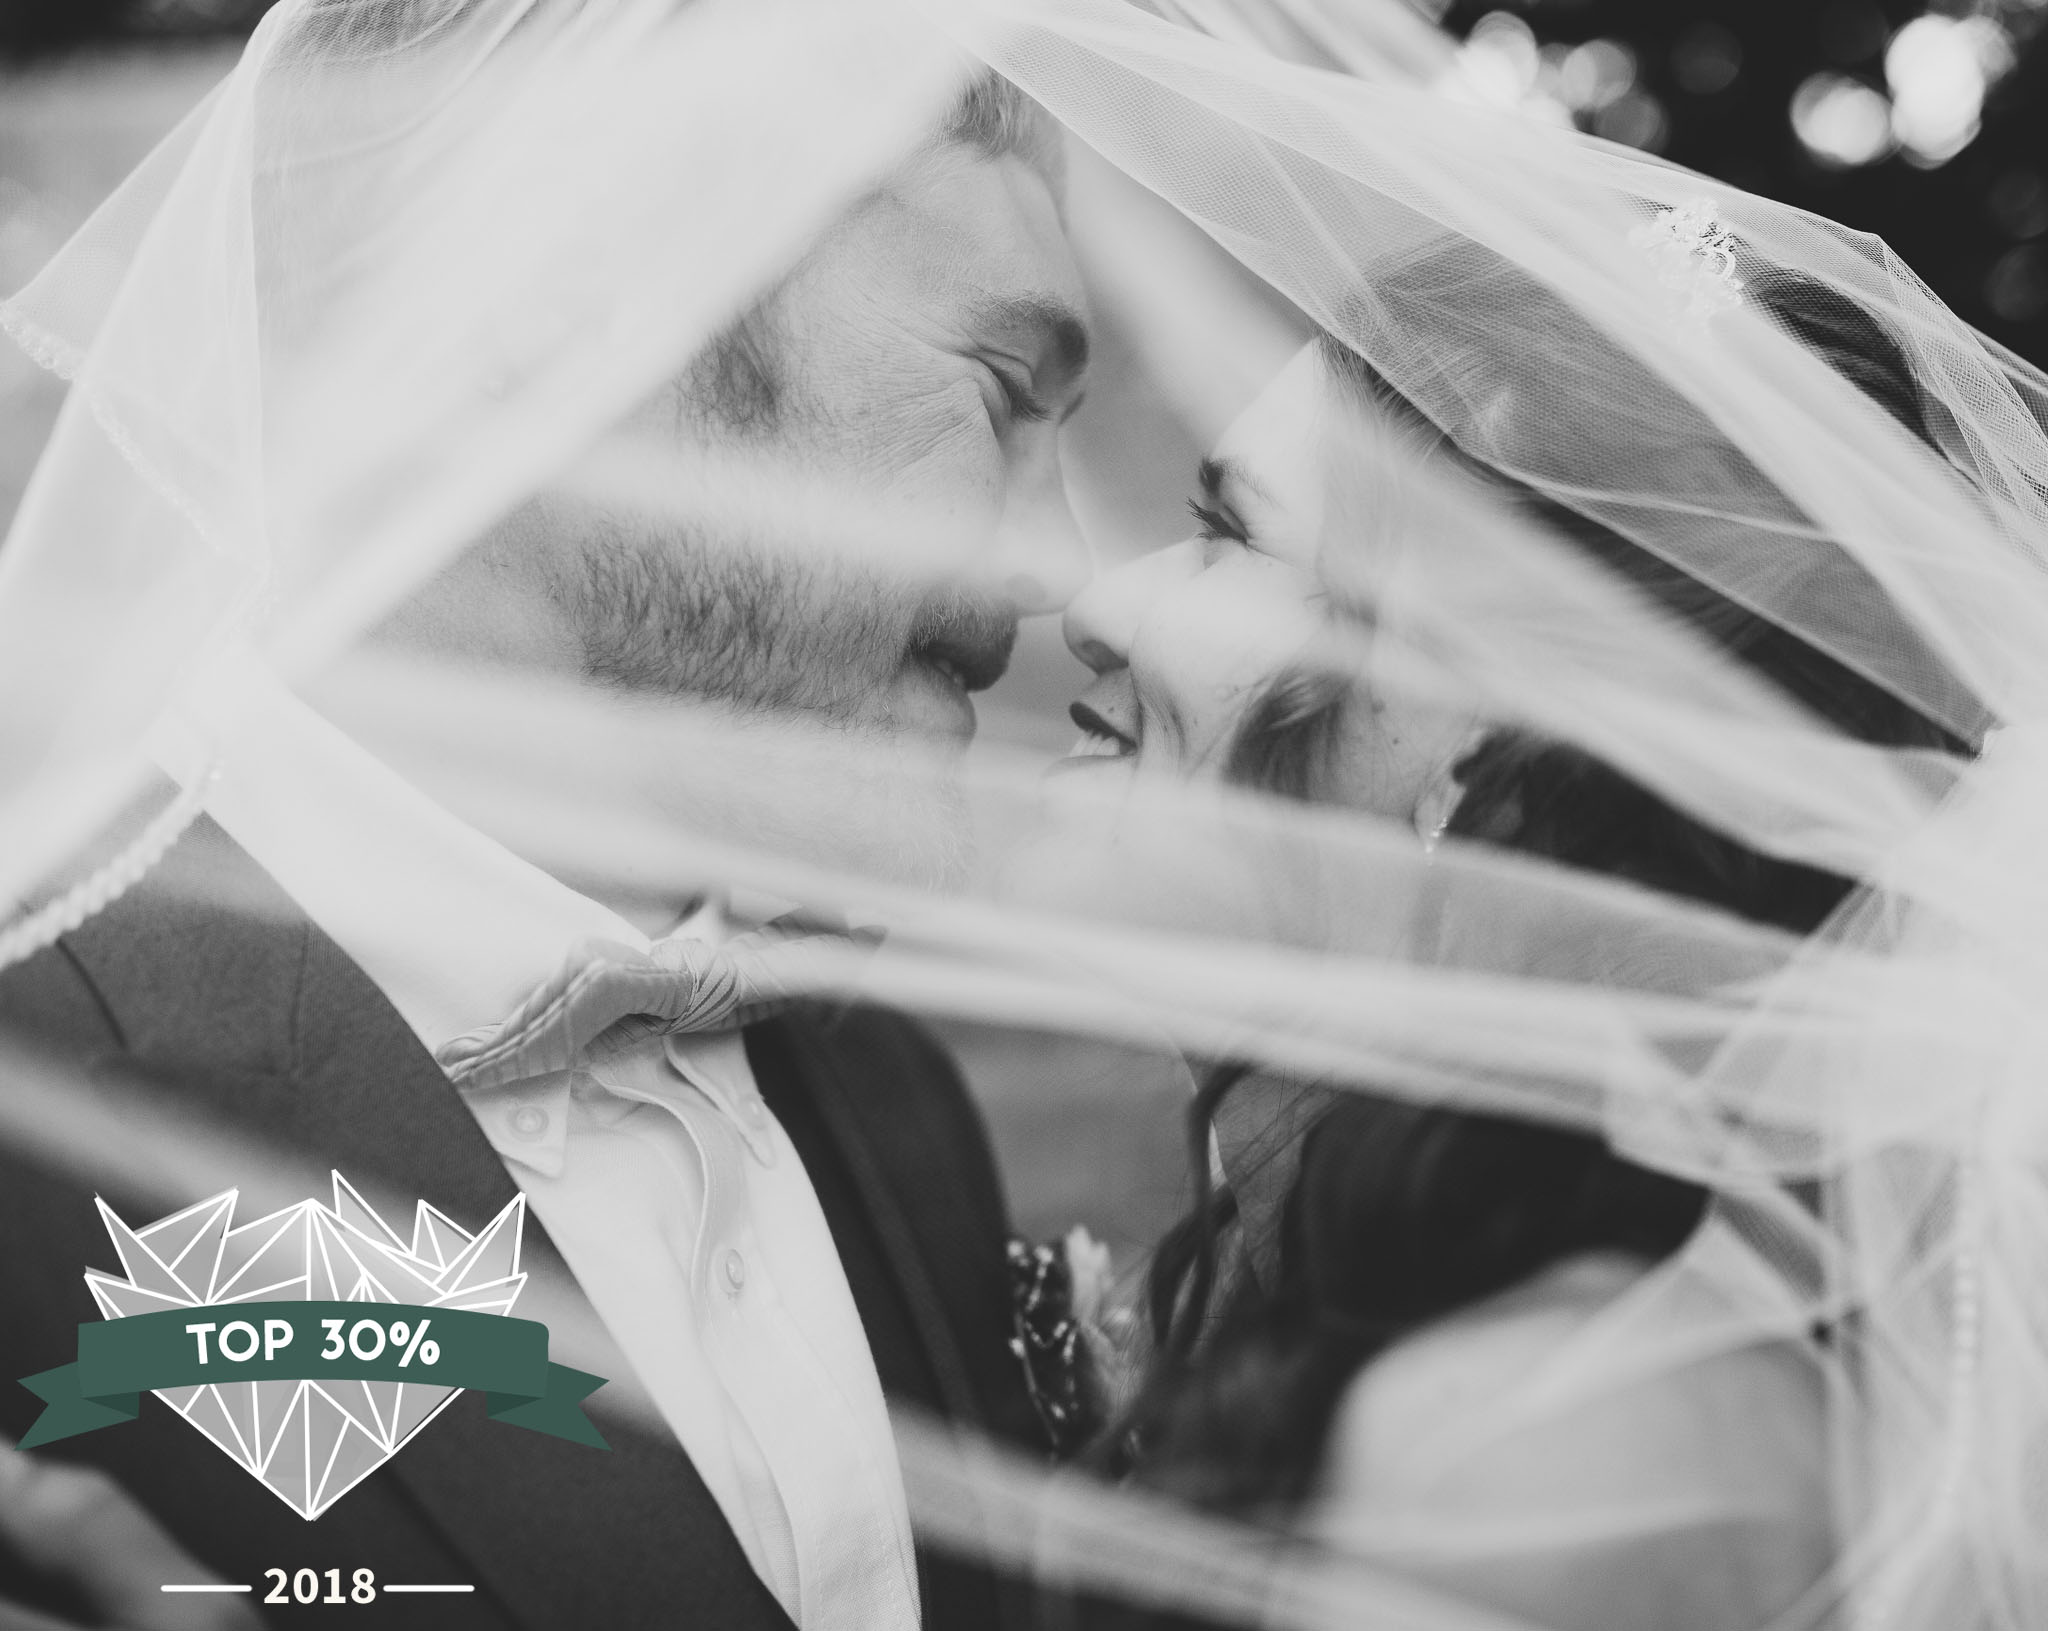 dayton-maine-wedding-photographer-biddeford-buxton-barn-portland-kennebunk-bride-groom-veil-creative-photography.jpg